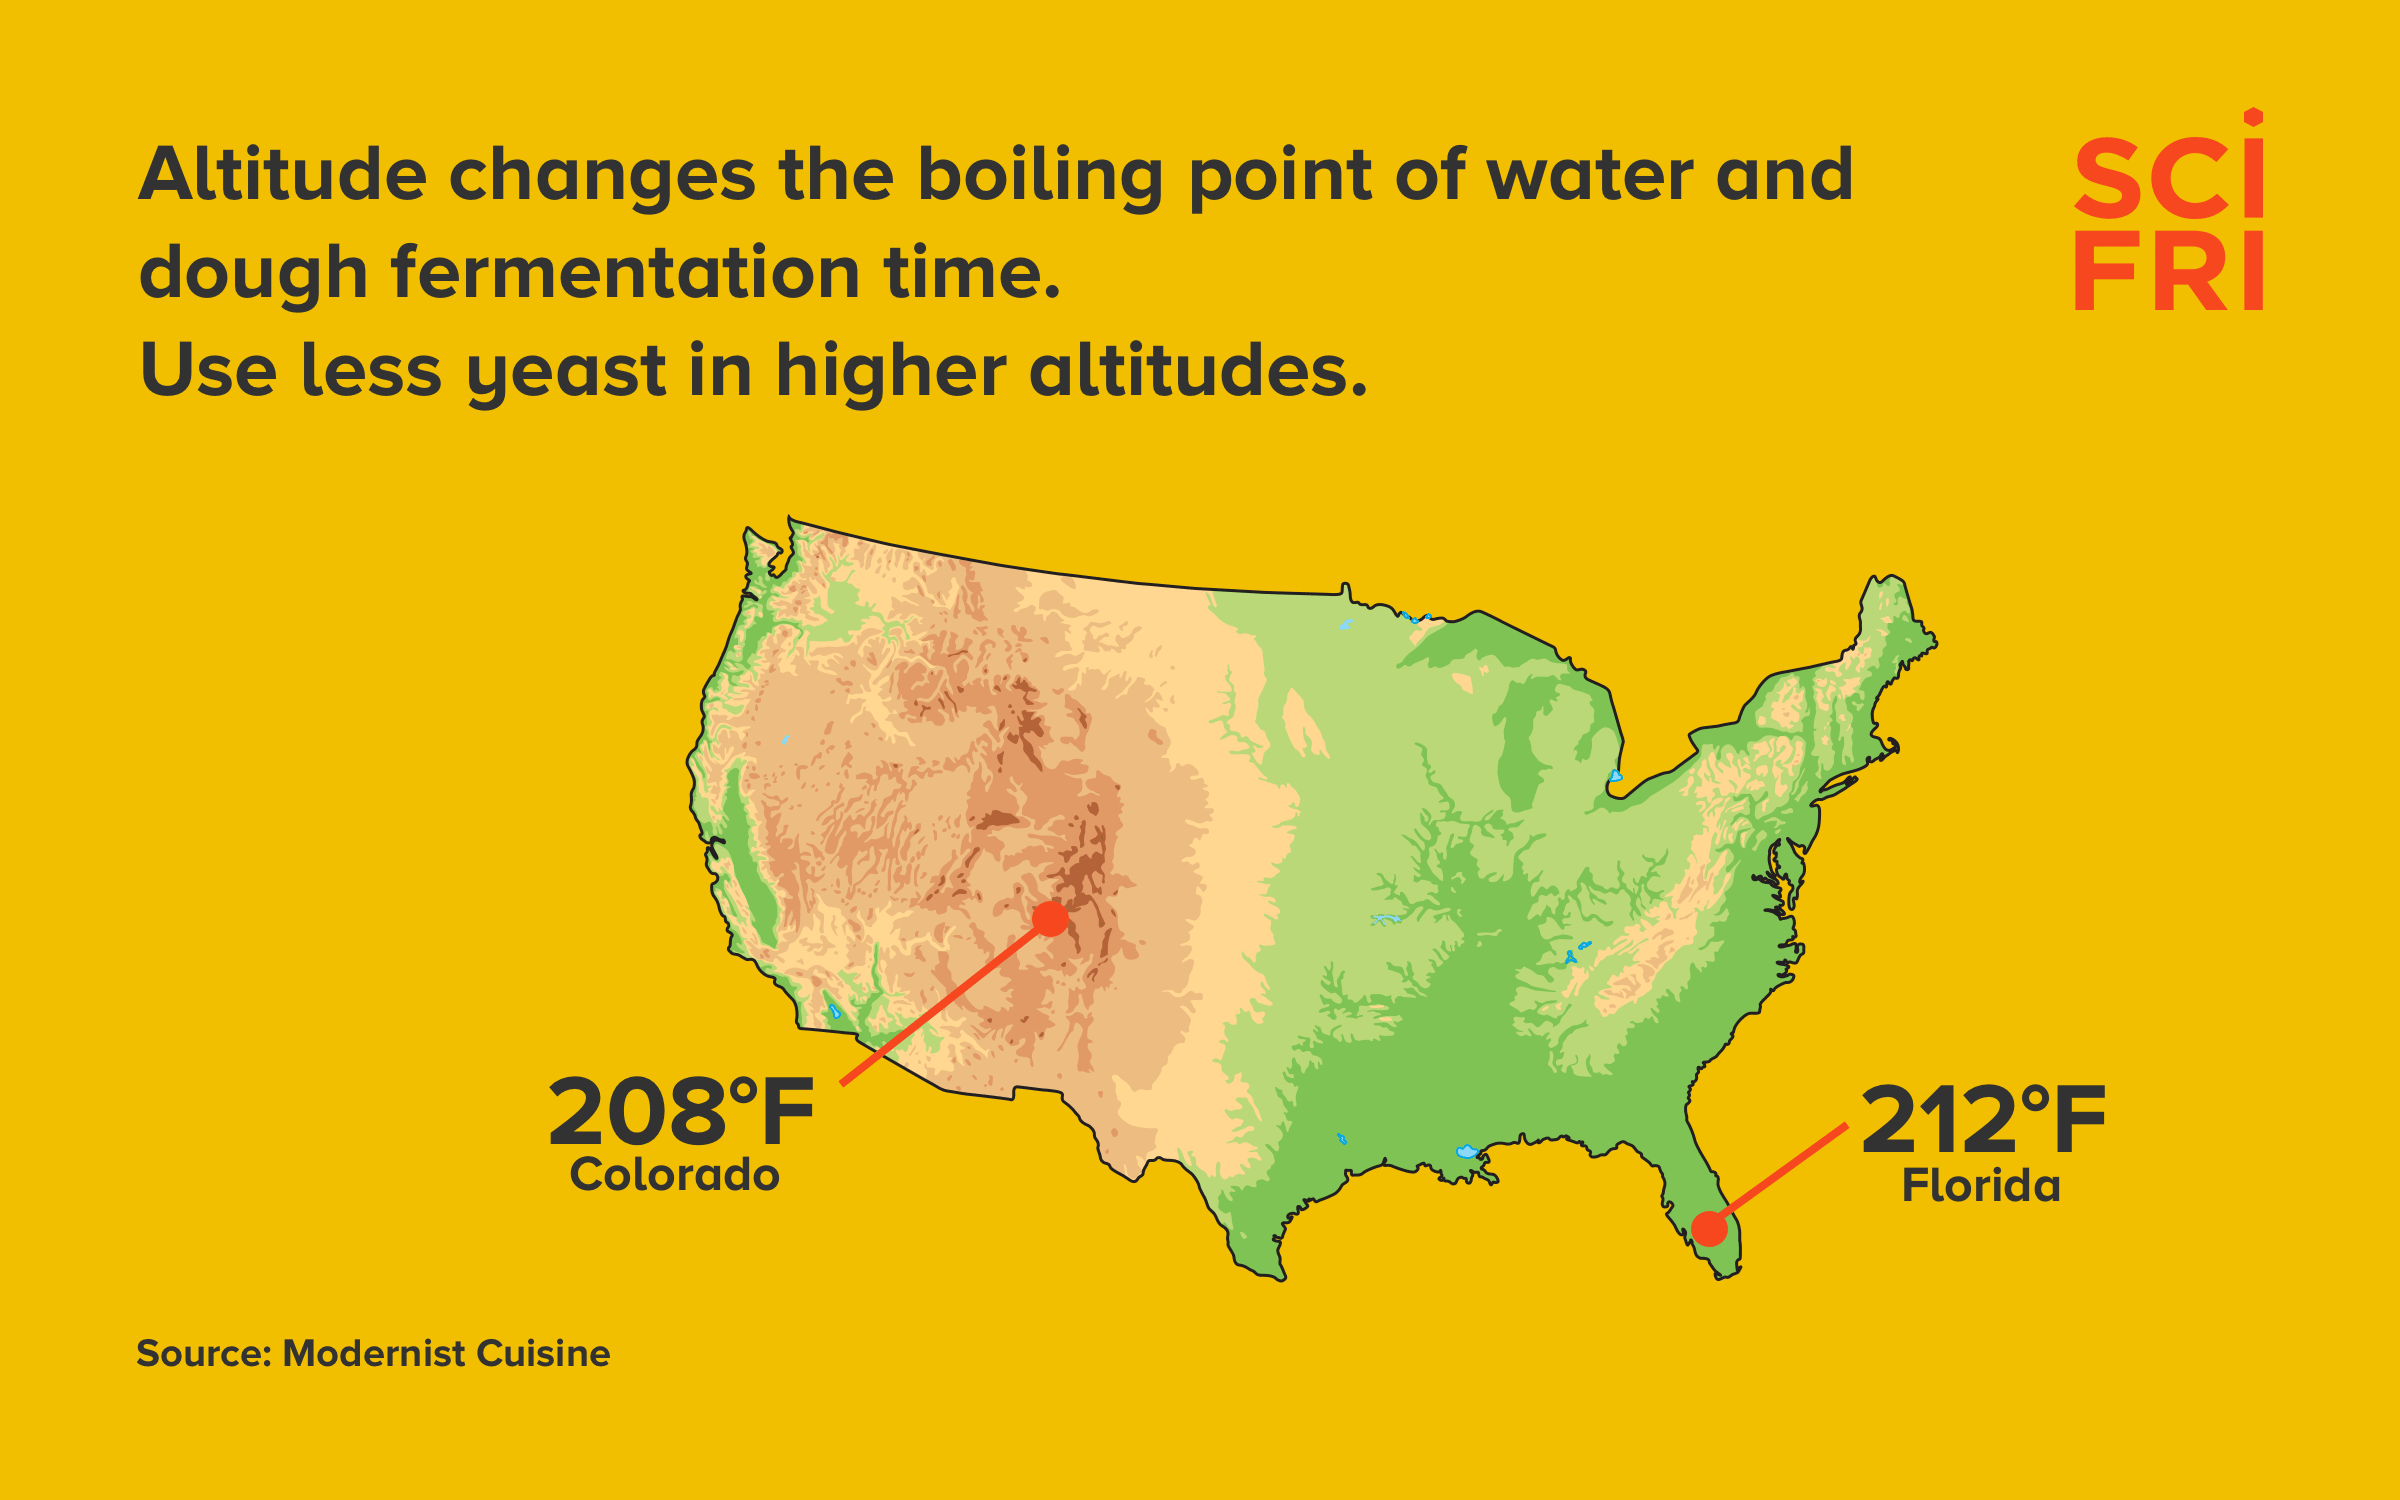 Map of the United States representing different boiling points of water in Colorado and Florida